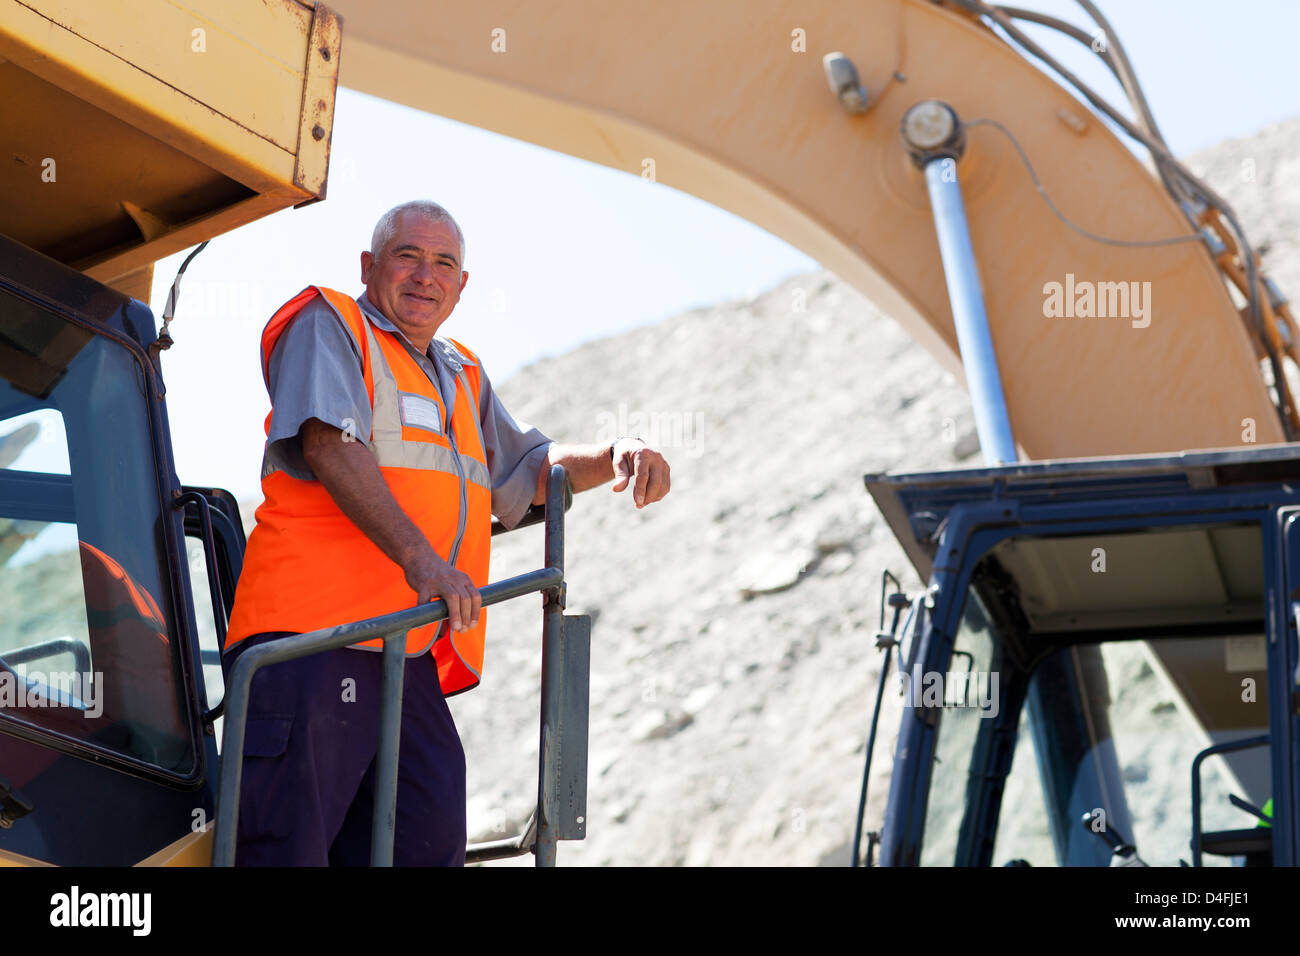 Worker standing on machinery on site - Stock Image